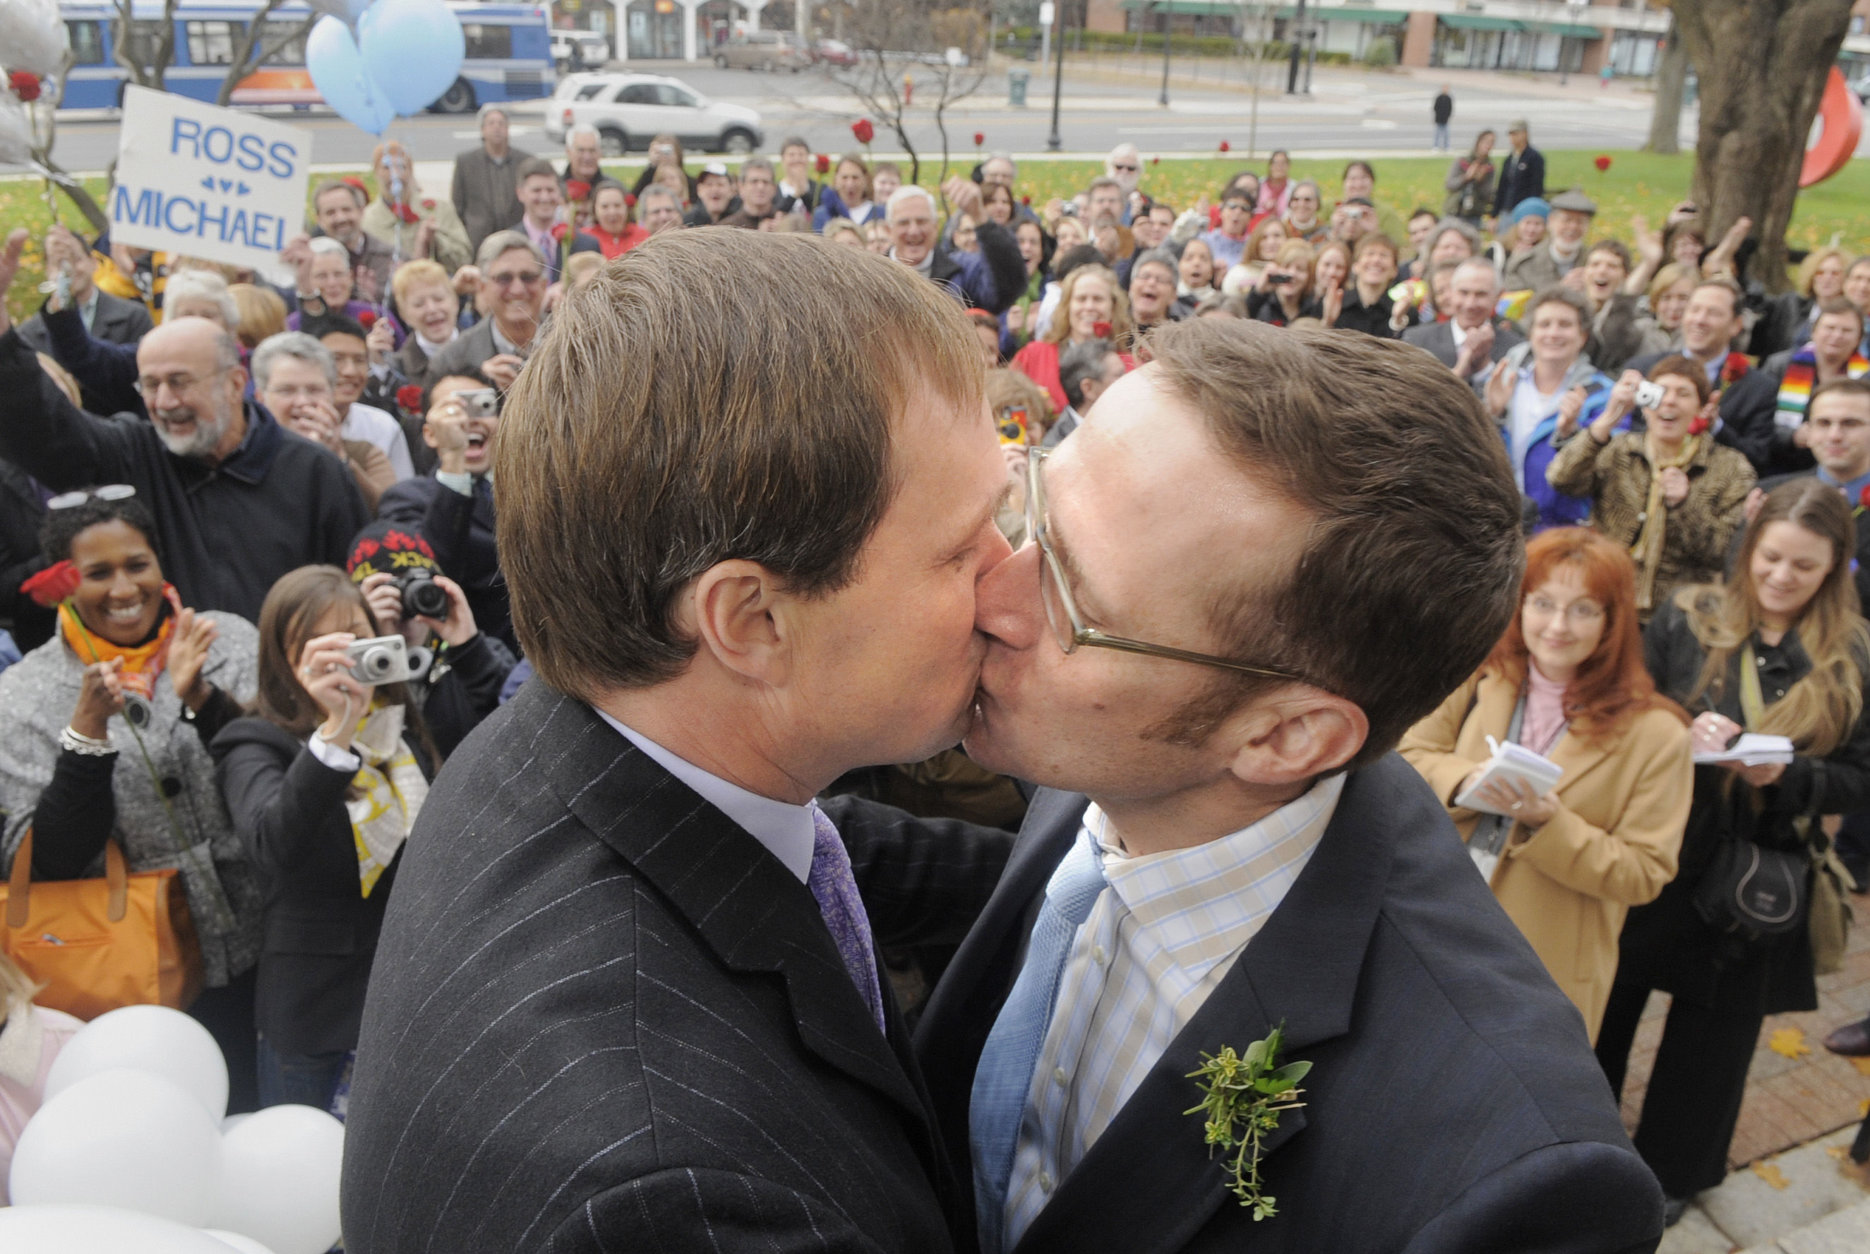 Michael Miller, left, and Ross Zachs, both of Hartford, share a kiss after being married in West Hartford, Conn., on Wednesday, Nov. 12, 2008. Miller and Zachs married on the day that a New Haven Superior Court Judge ruled that same sex marriages were legal in Connecticut.  (AP Photo/Fred Beckham)